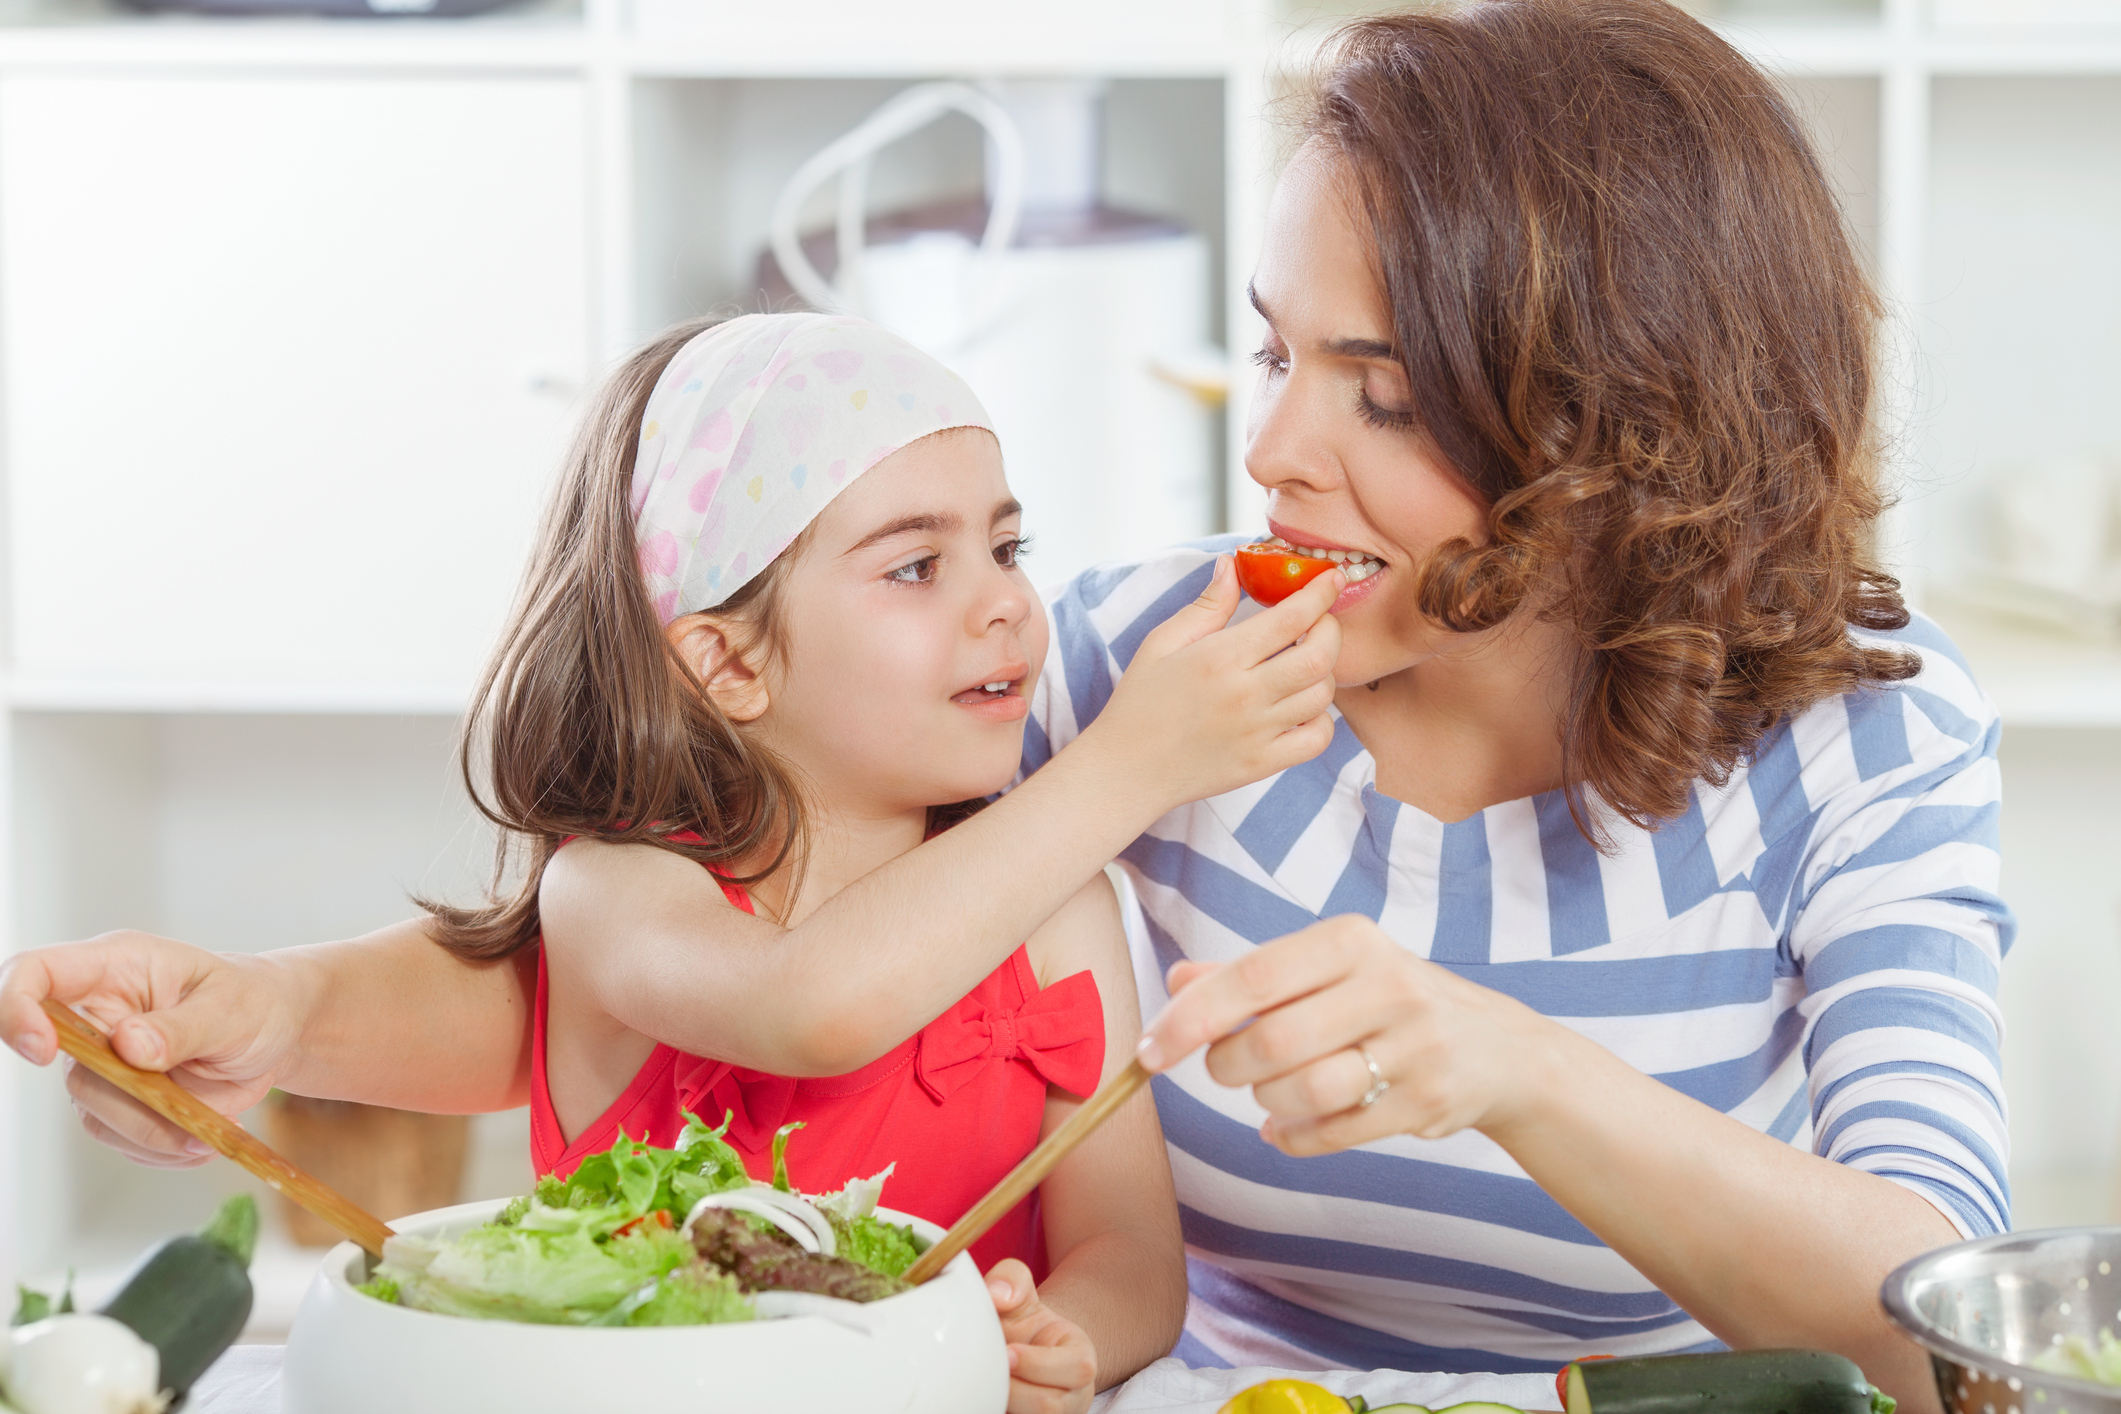 6 Reasons Why You Should Raise Your Kids Vegetarian | LoveToKnow